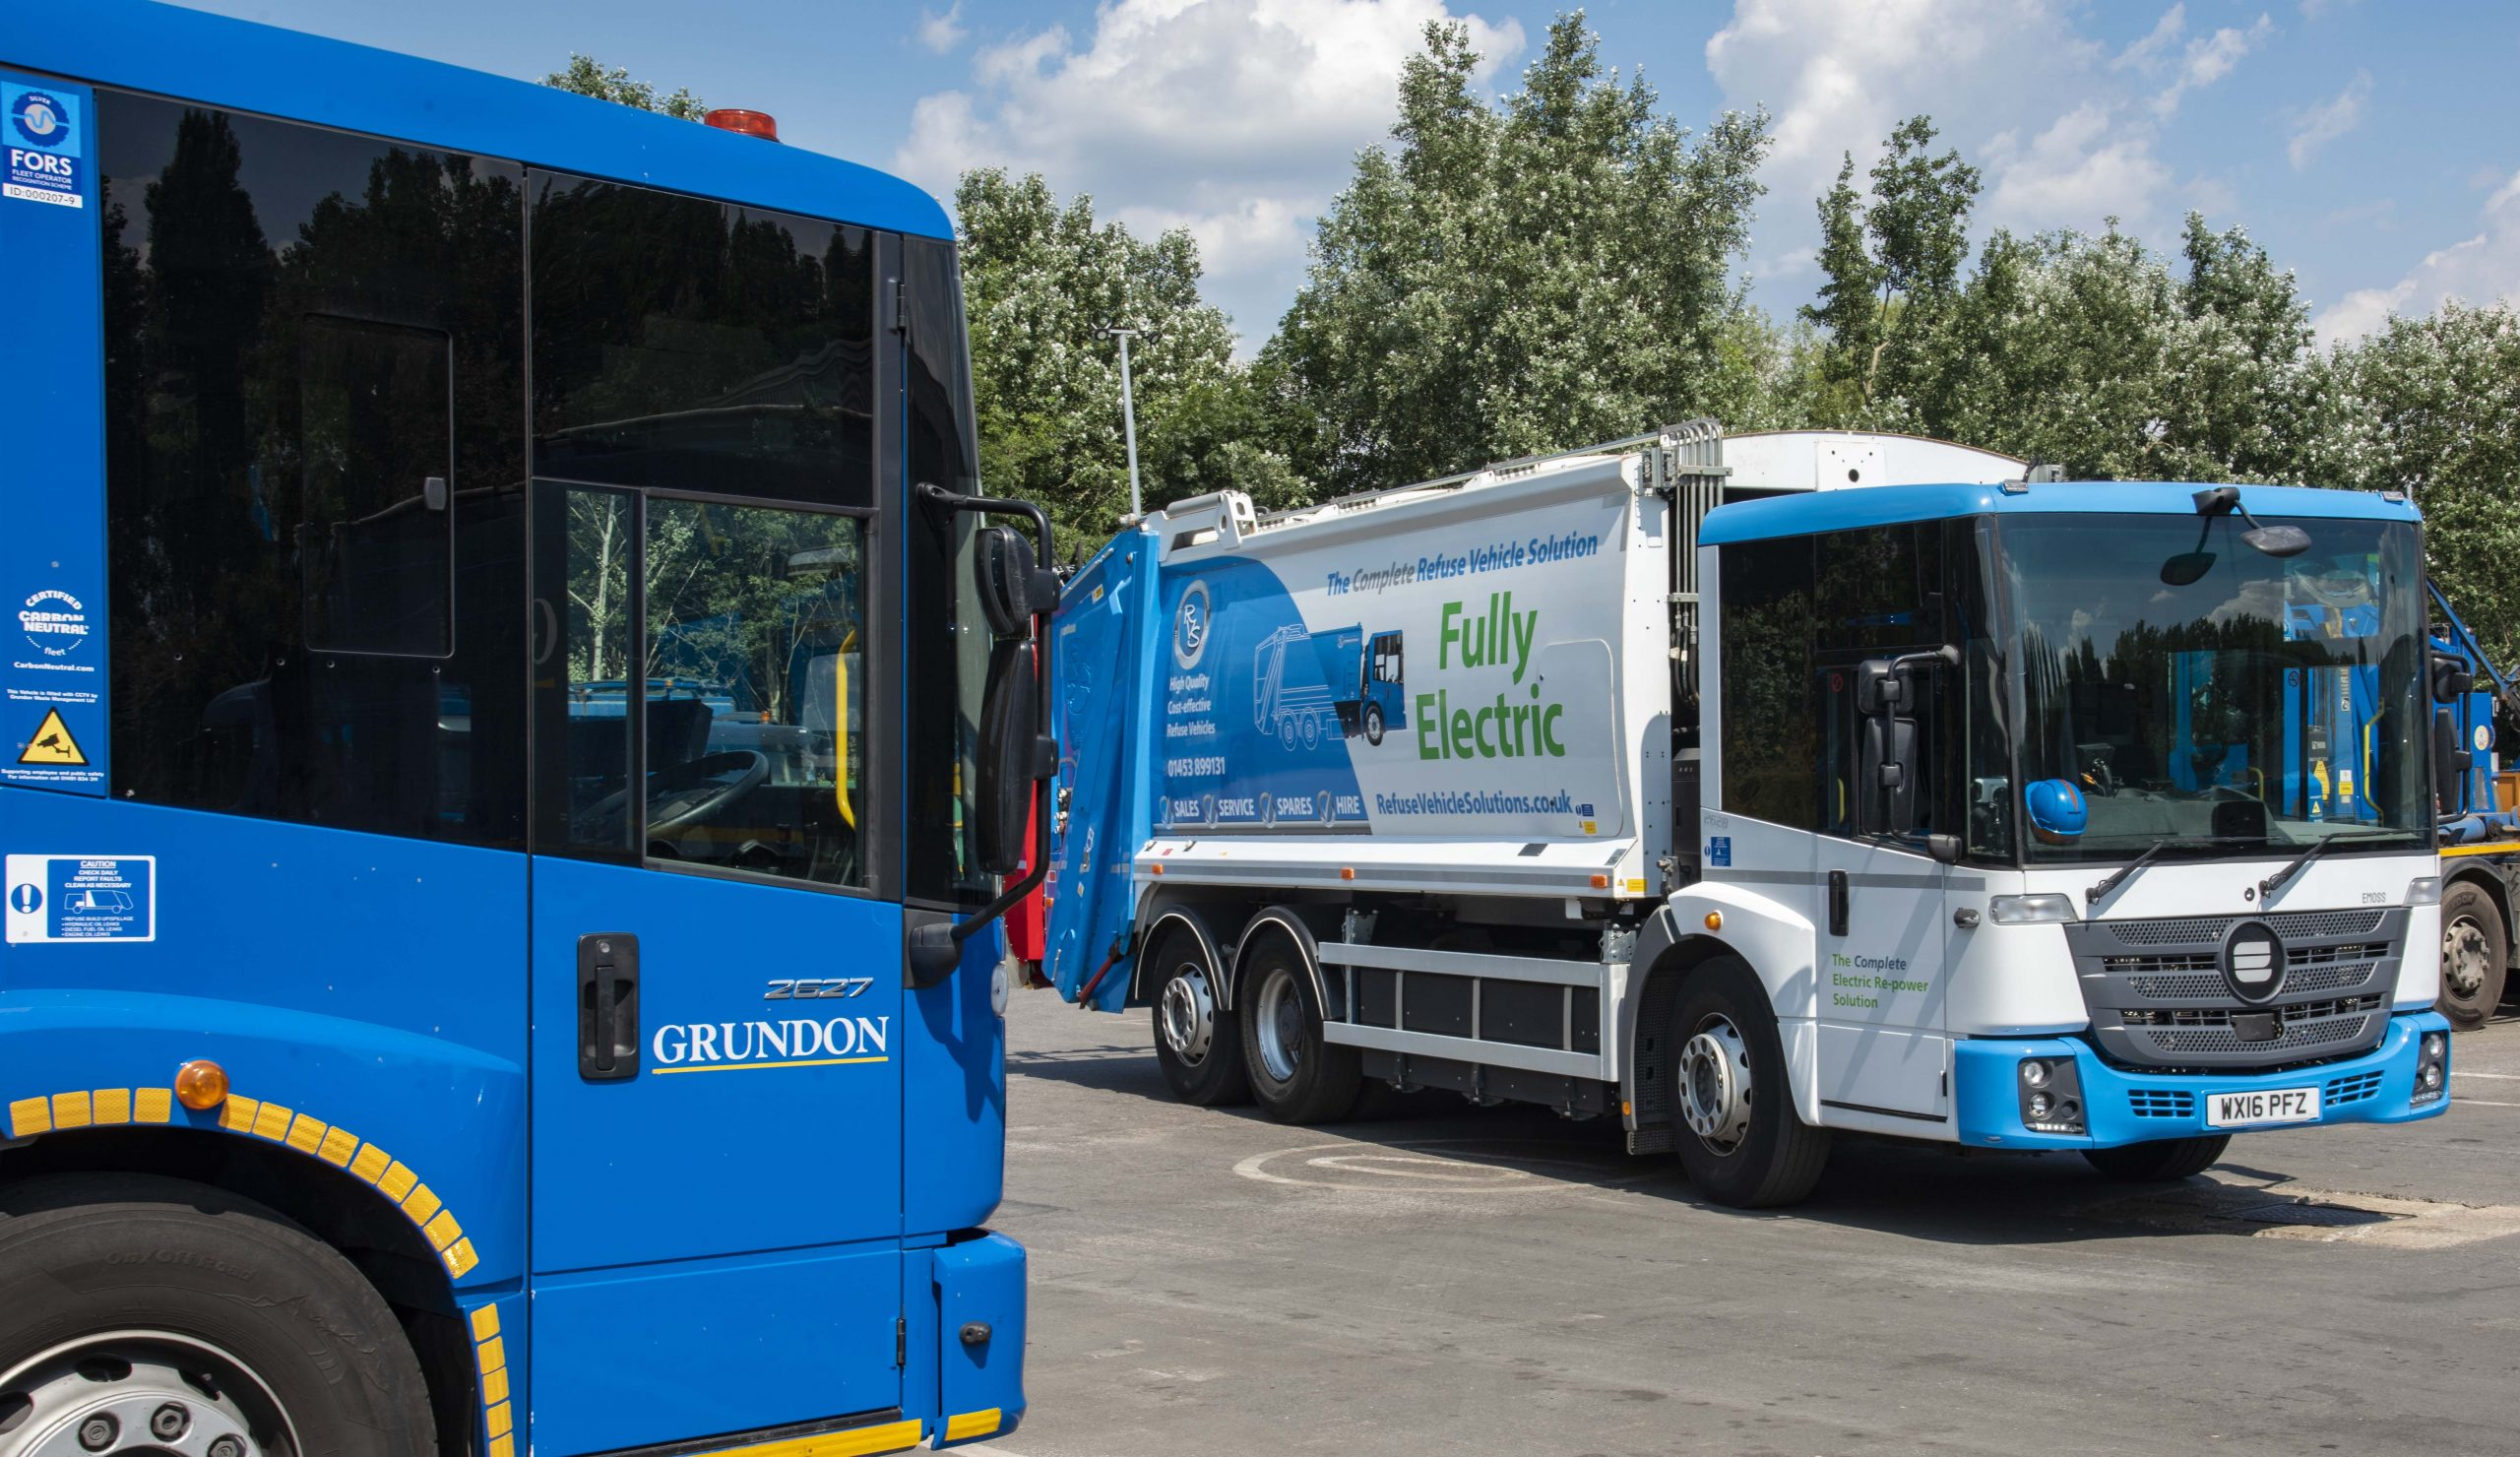 Grundon has been trialling an electric waste collection vehicle